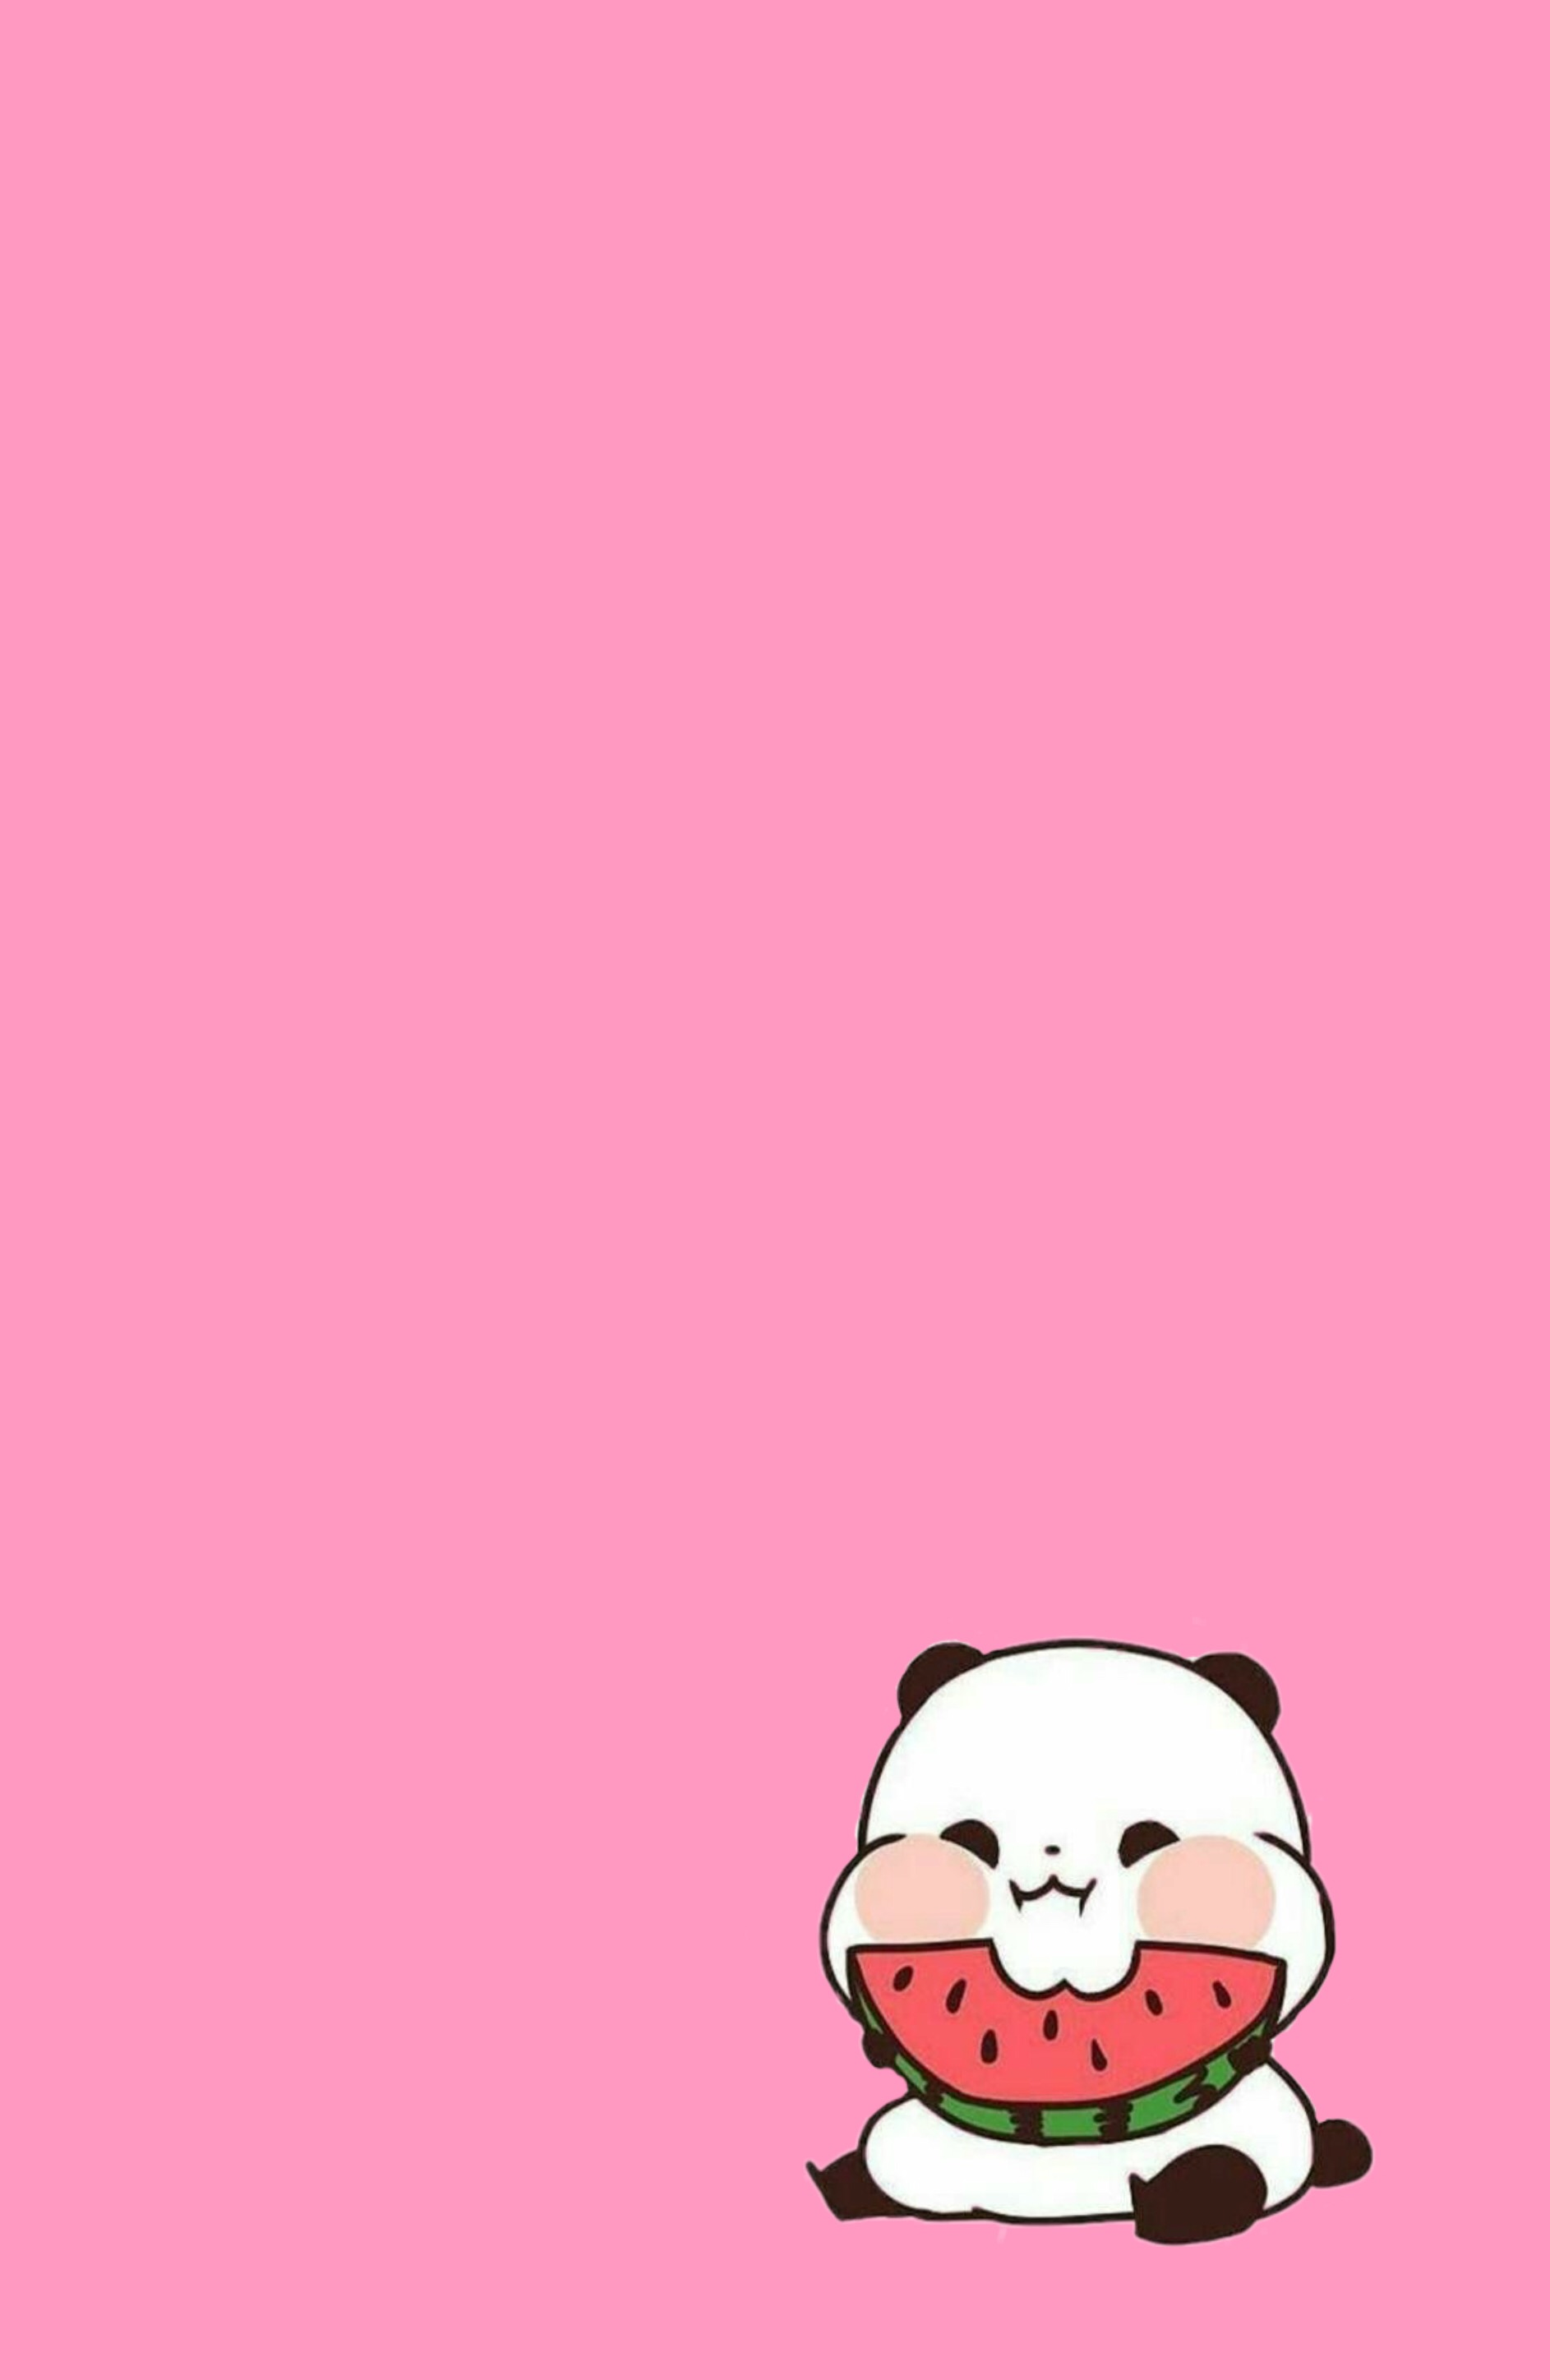 Cute Bts Wallpapers Wallpapers Heres A Cute Panda Eating A Watermelon With